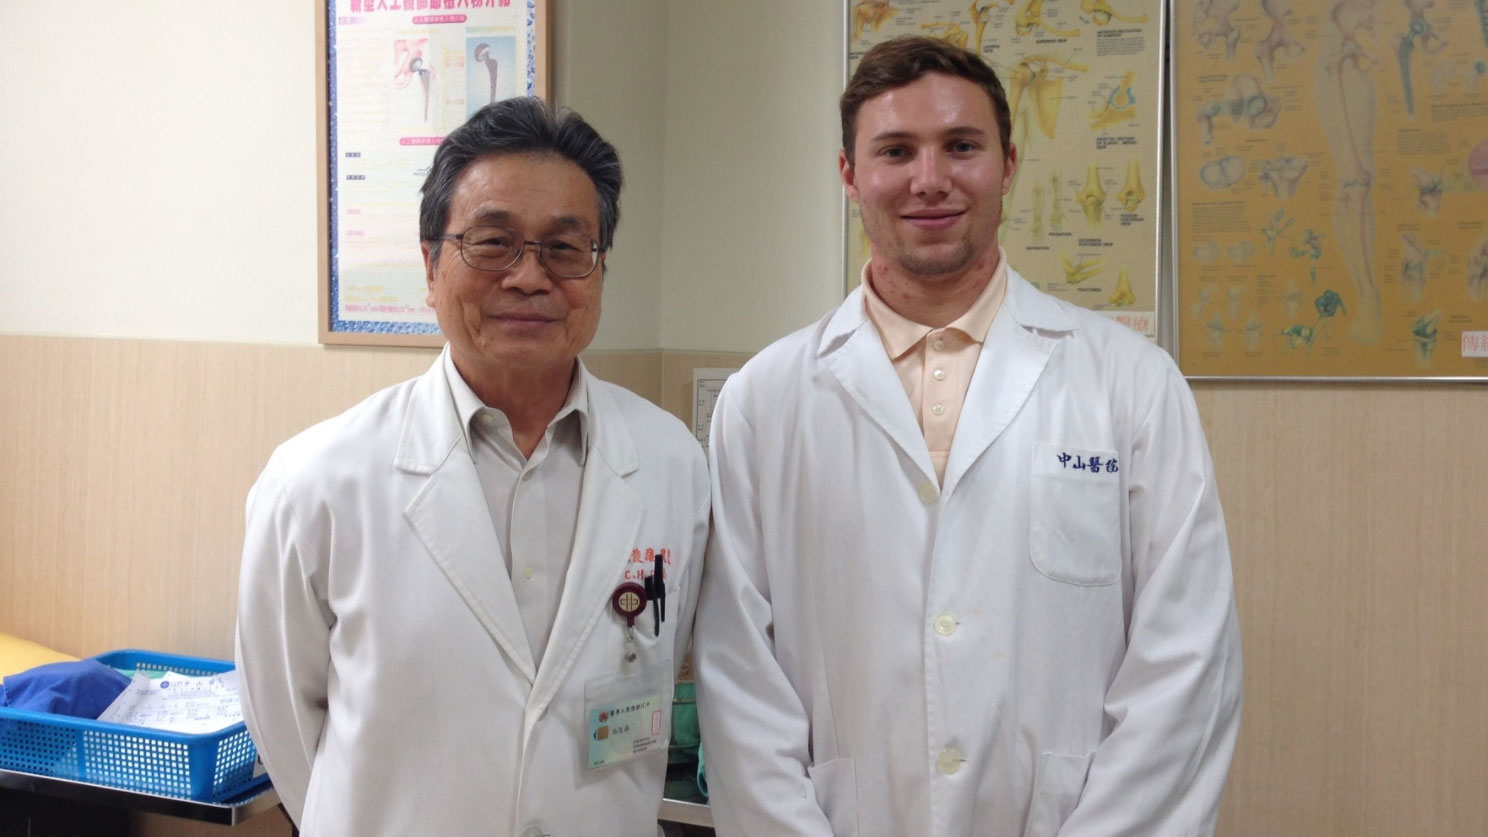 Grand Challenges Scholar Dean Spyres (right) poses with an orthopedic surgeon at Taipei Chang Gung Memorial Hospital.